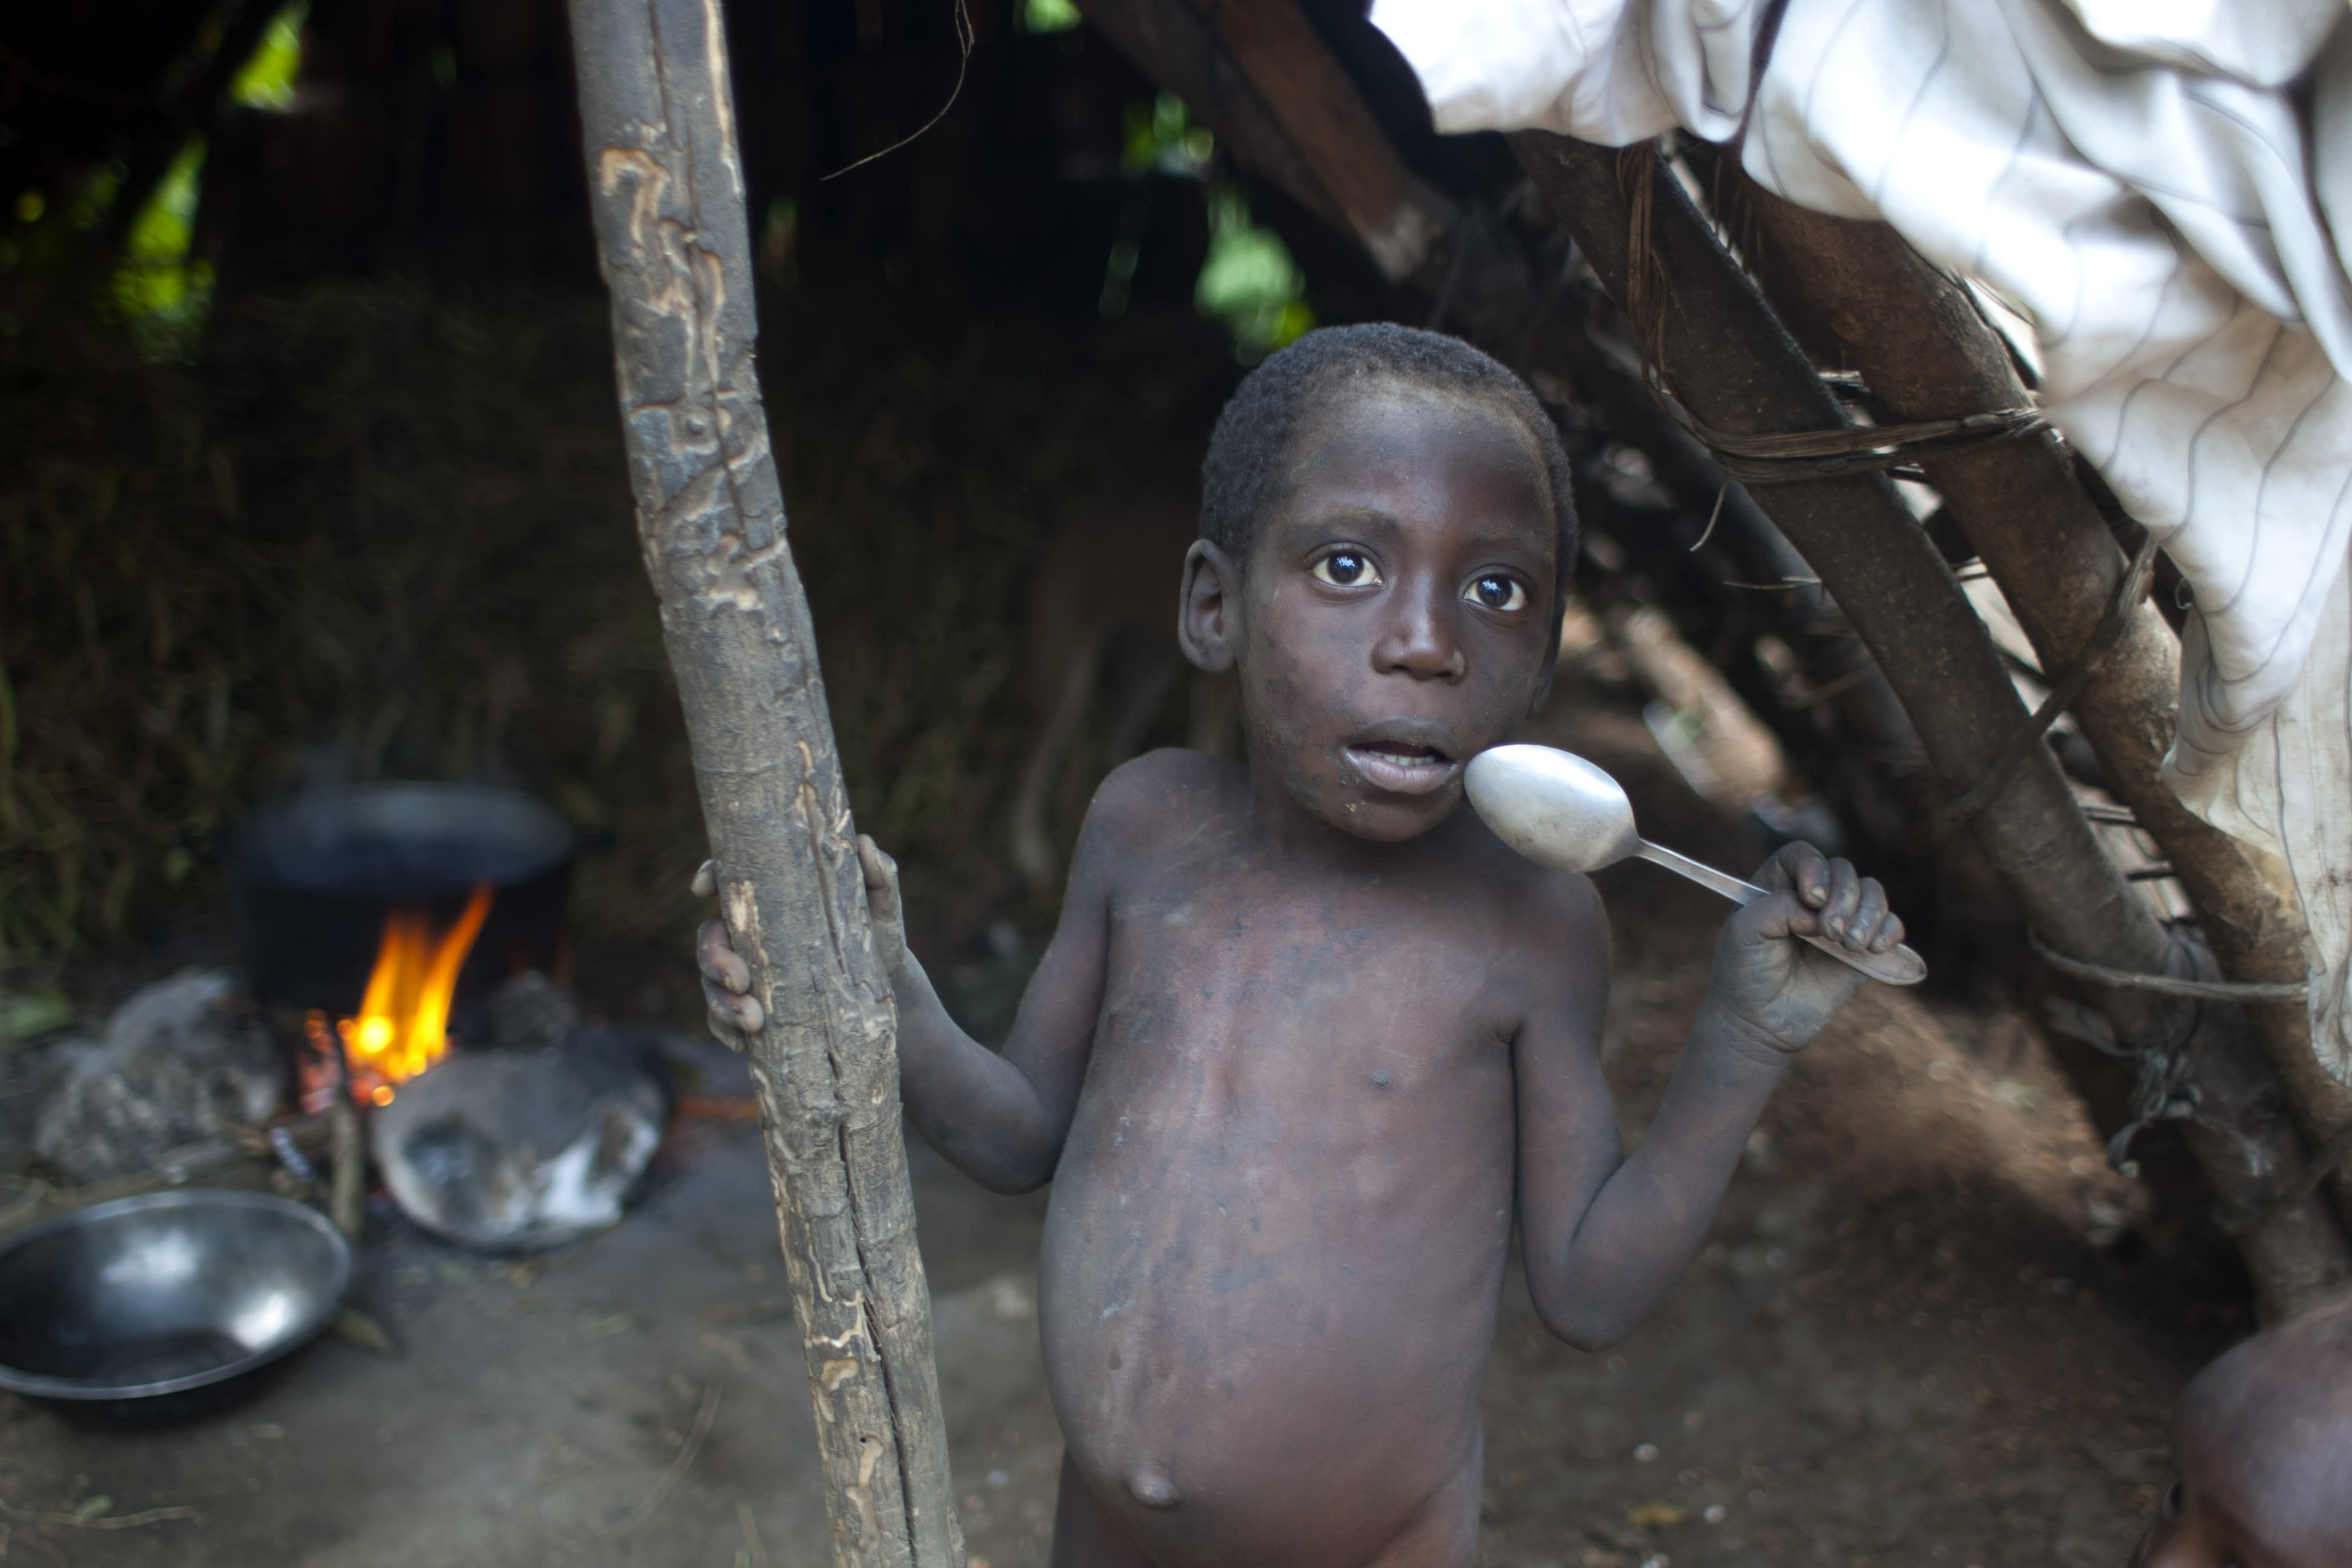 2 out of 3 people face hunger as Haiti woes mount